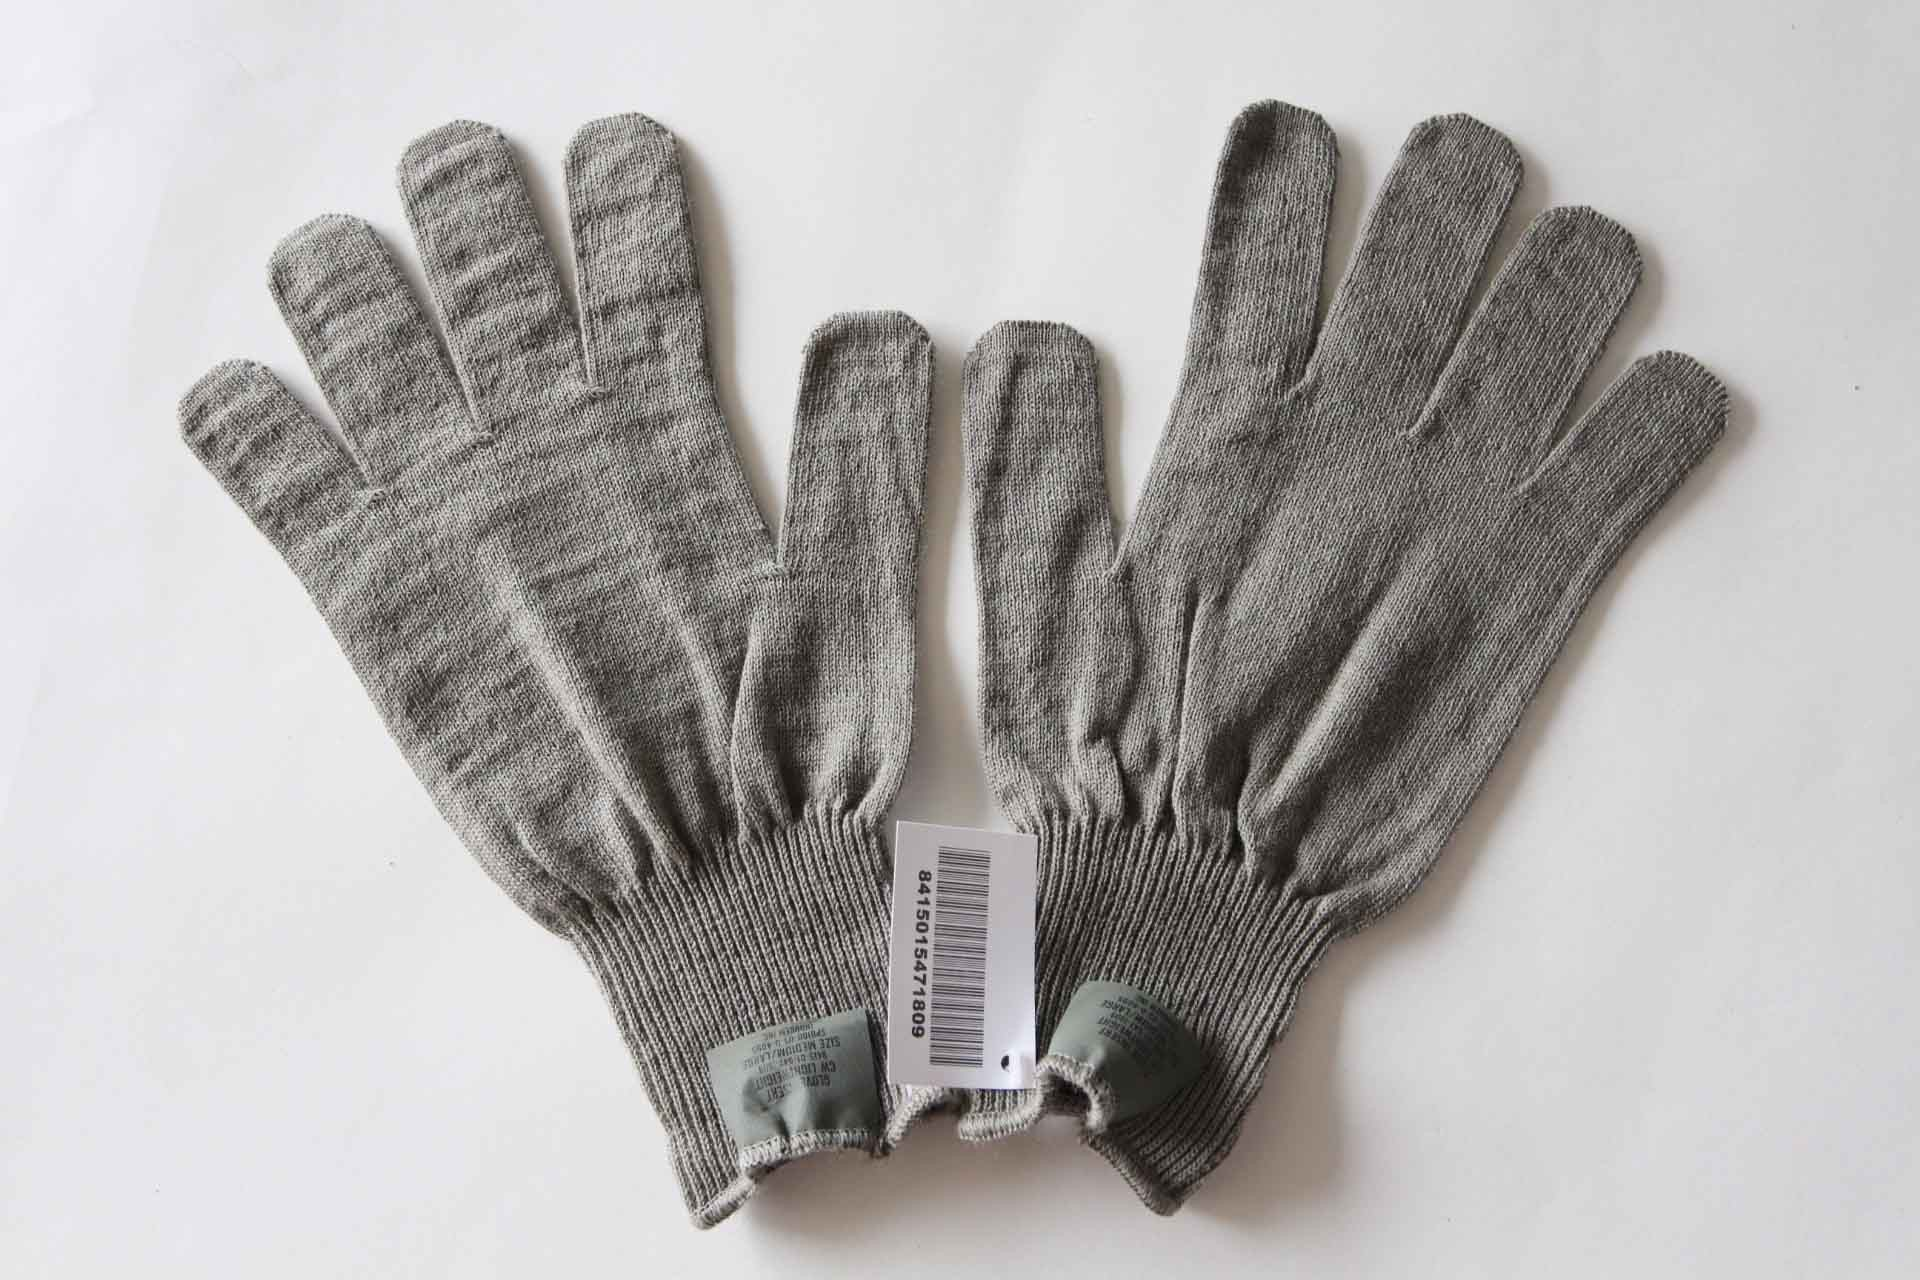 US Military Army Full Finger Wool Glove Mitten Liners - Hank s Surplus 14d8b808d43